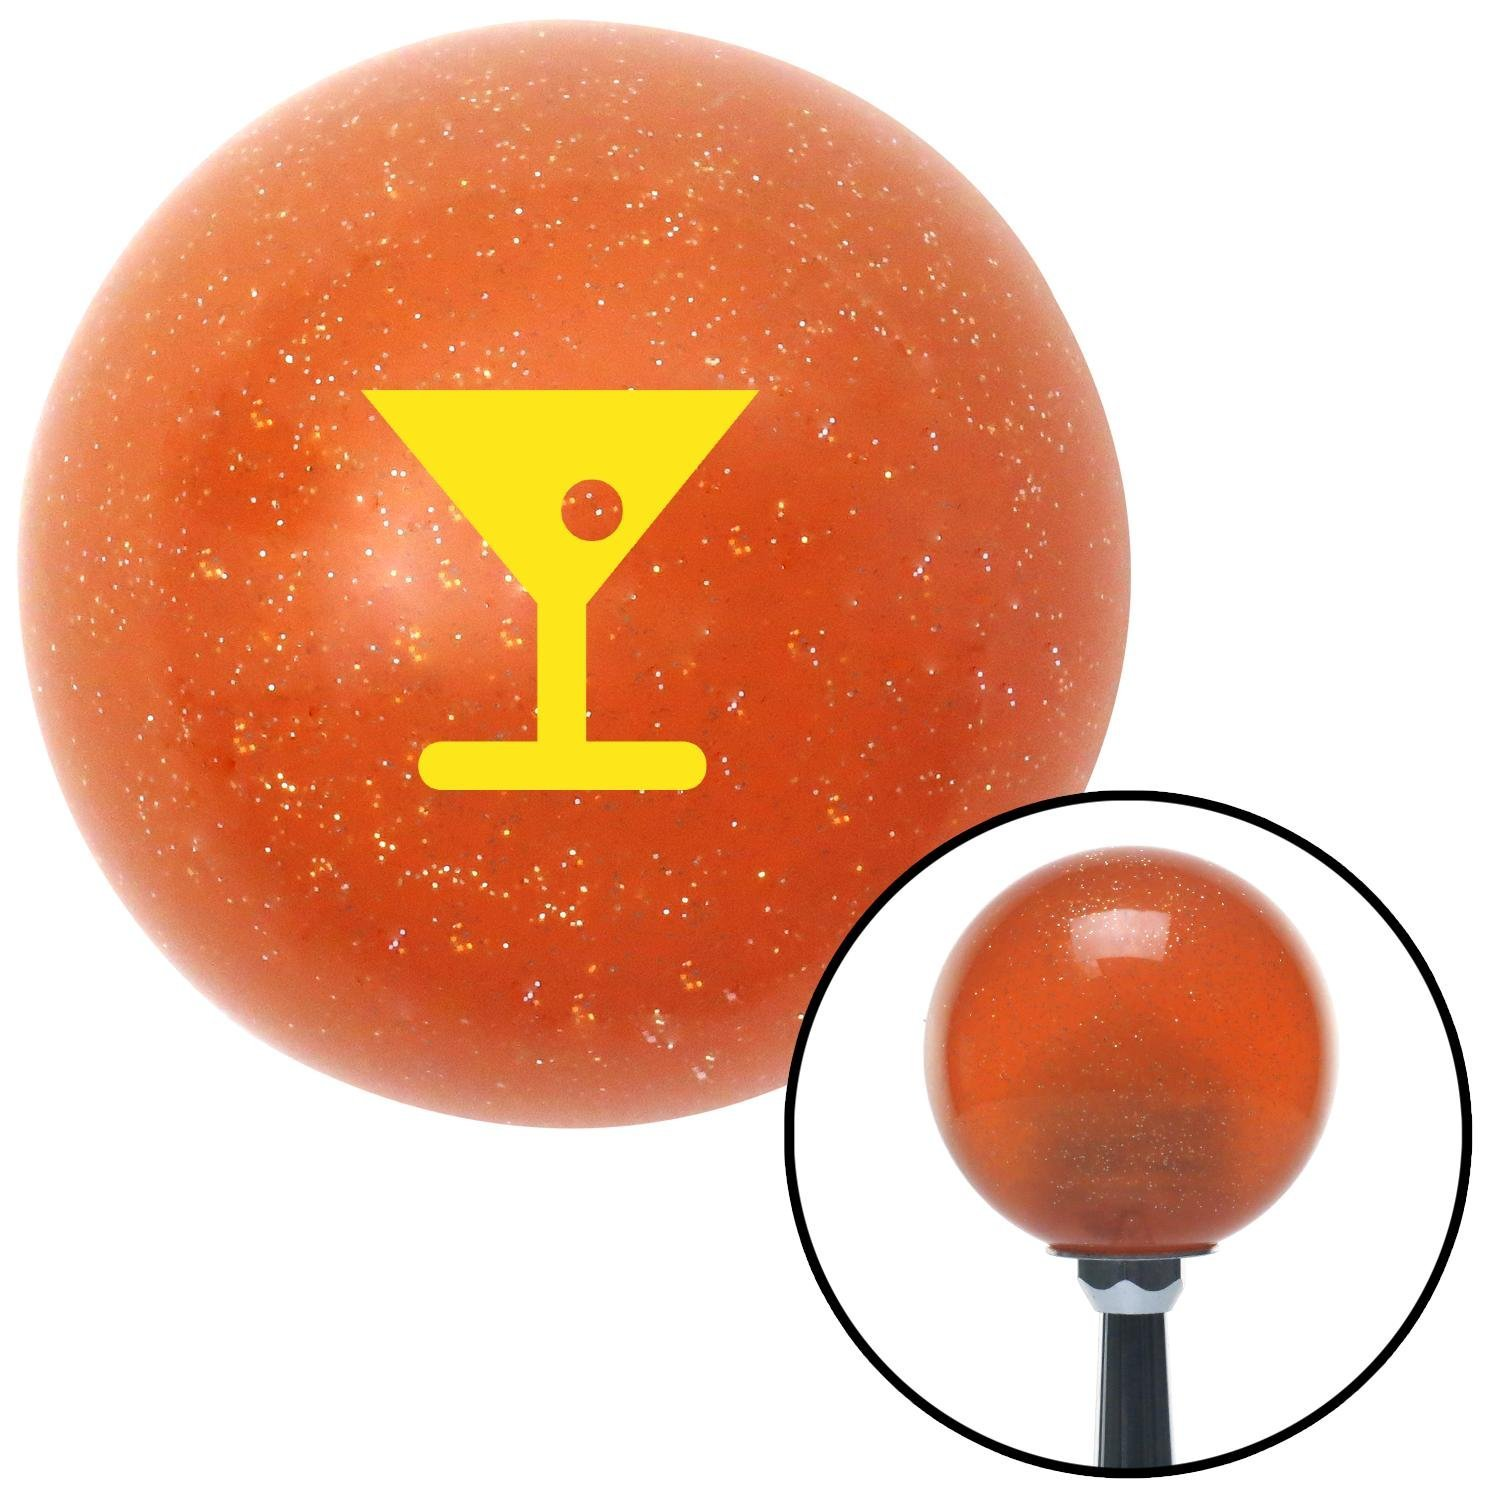 American Shifter 37425 Orange Metal Flake Shift Knob with 16mm x 1.5mm Insert Yellow Martini Glass w//Olive